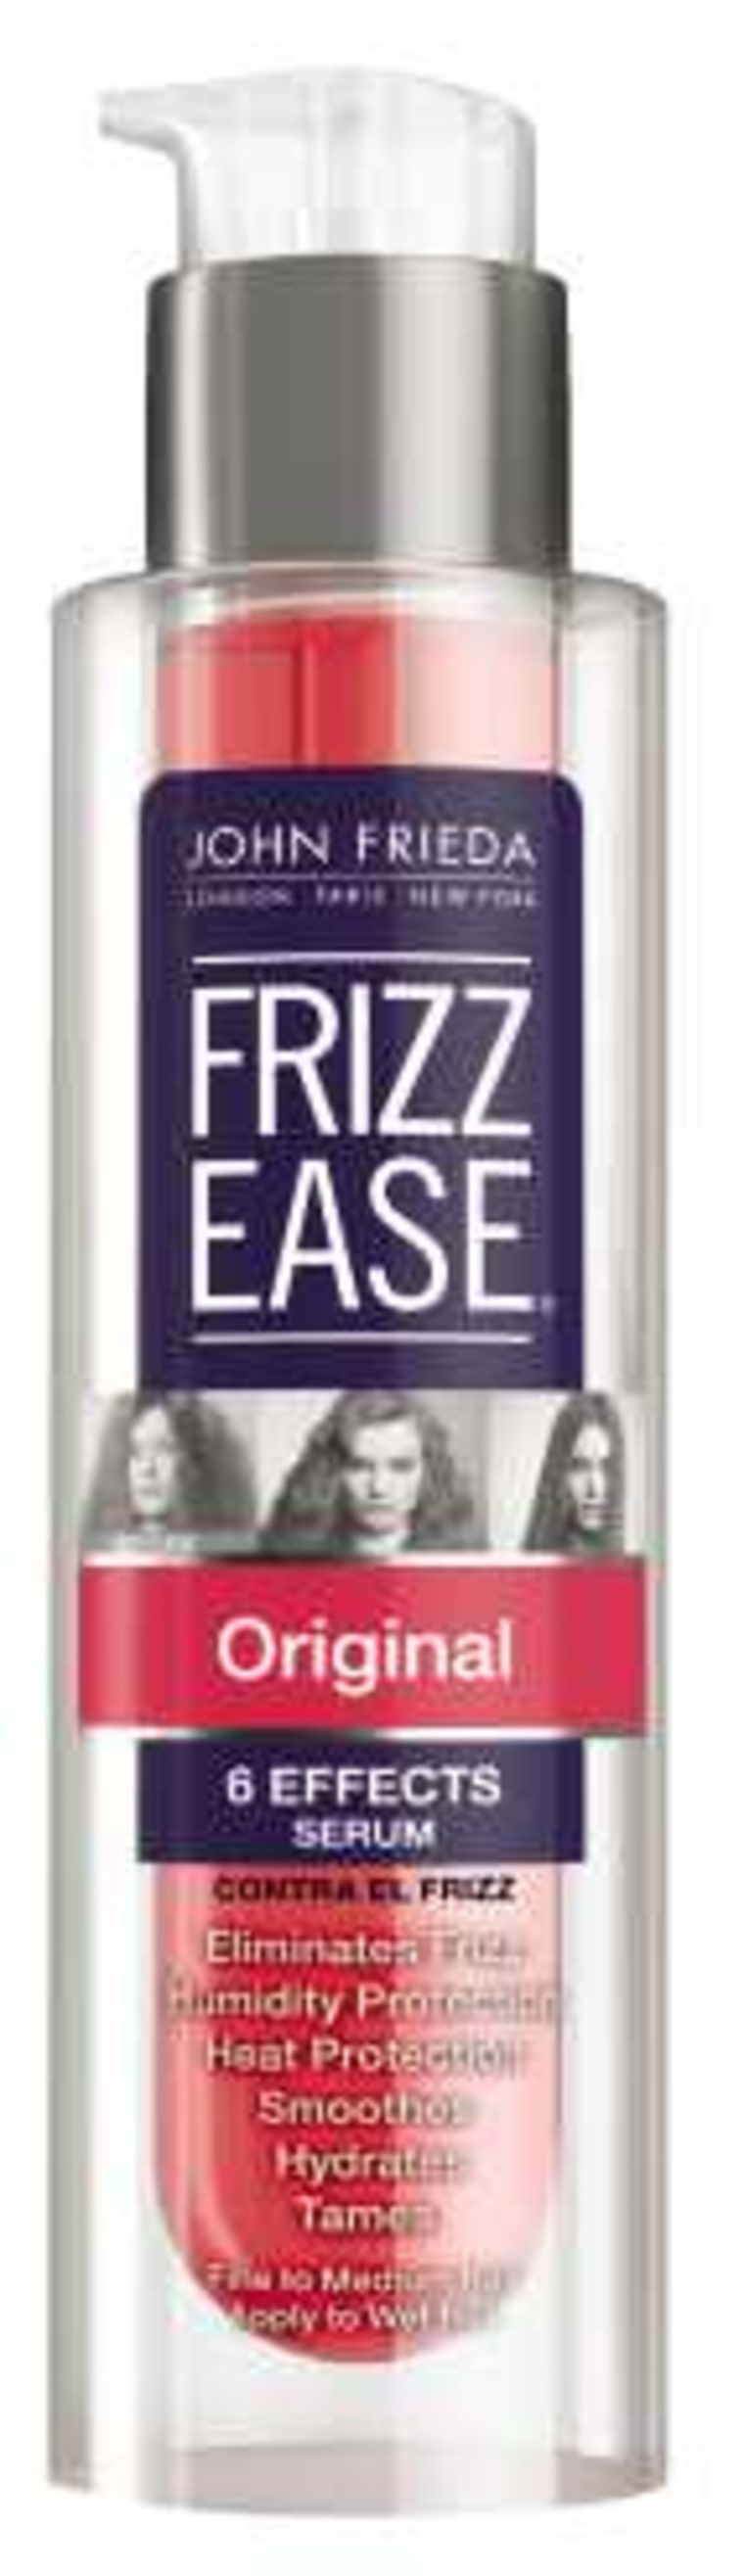 John Frieda Frizz Ease Original Formula Serum